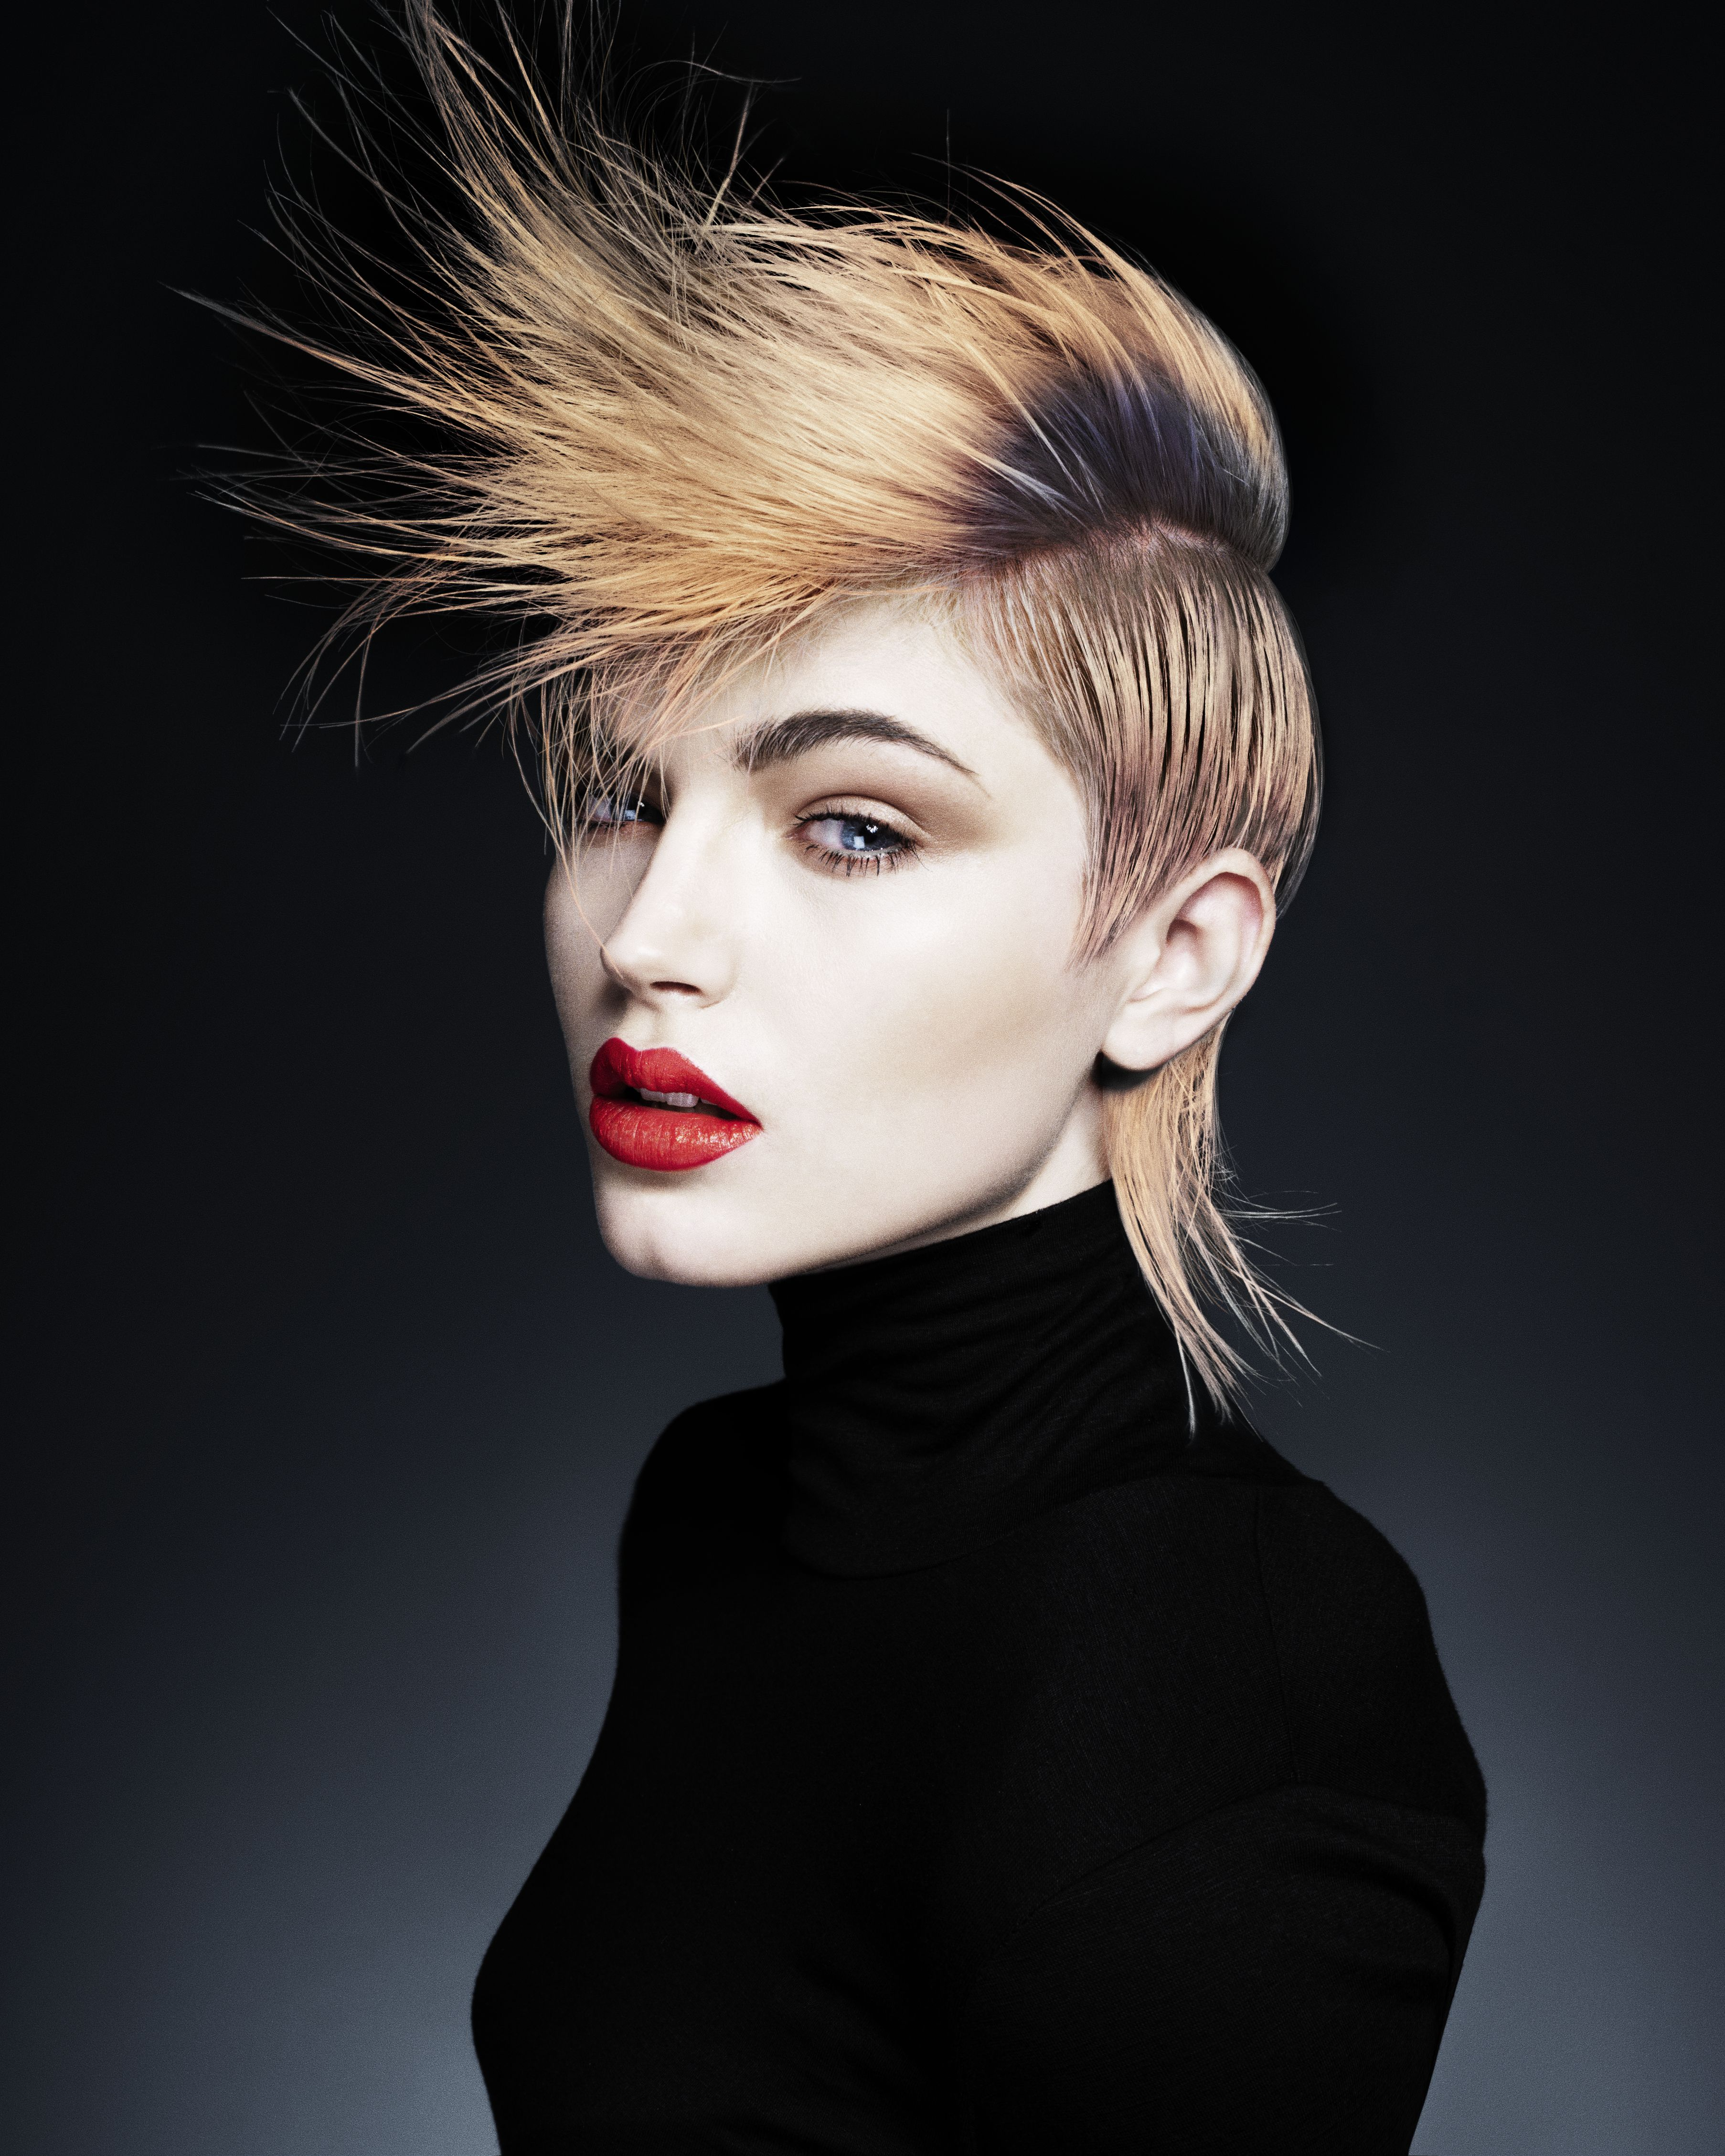 Fashion hairstyles 2015 - New Season Hairstyles To Suit You Hairstyles 2014 Woman And Home I Love This Model S Makeup And Hairstyle